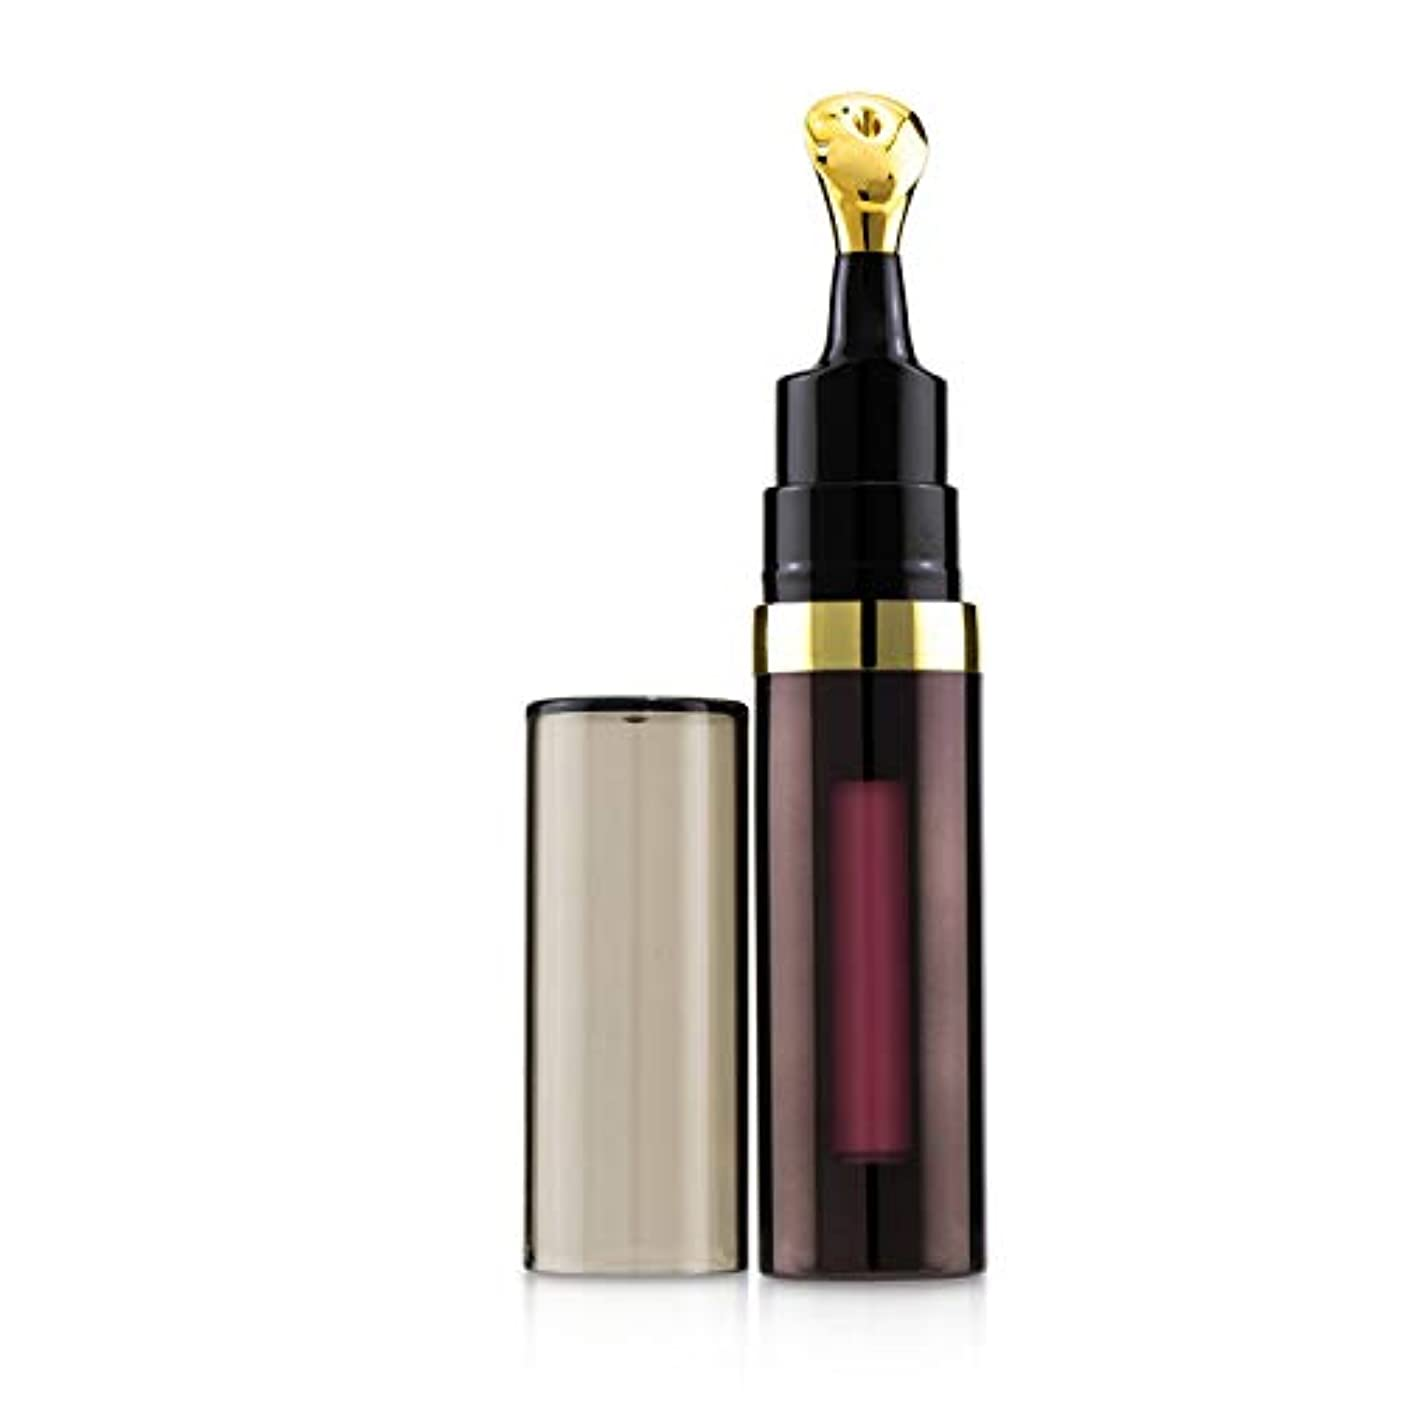 アワーグラス No.28 Lip Treatment Oil - # Adorn (Pinky Rose) 7.5ml/0.25oz並行輸入品